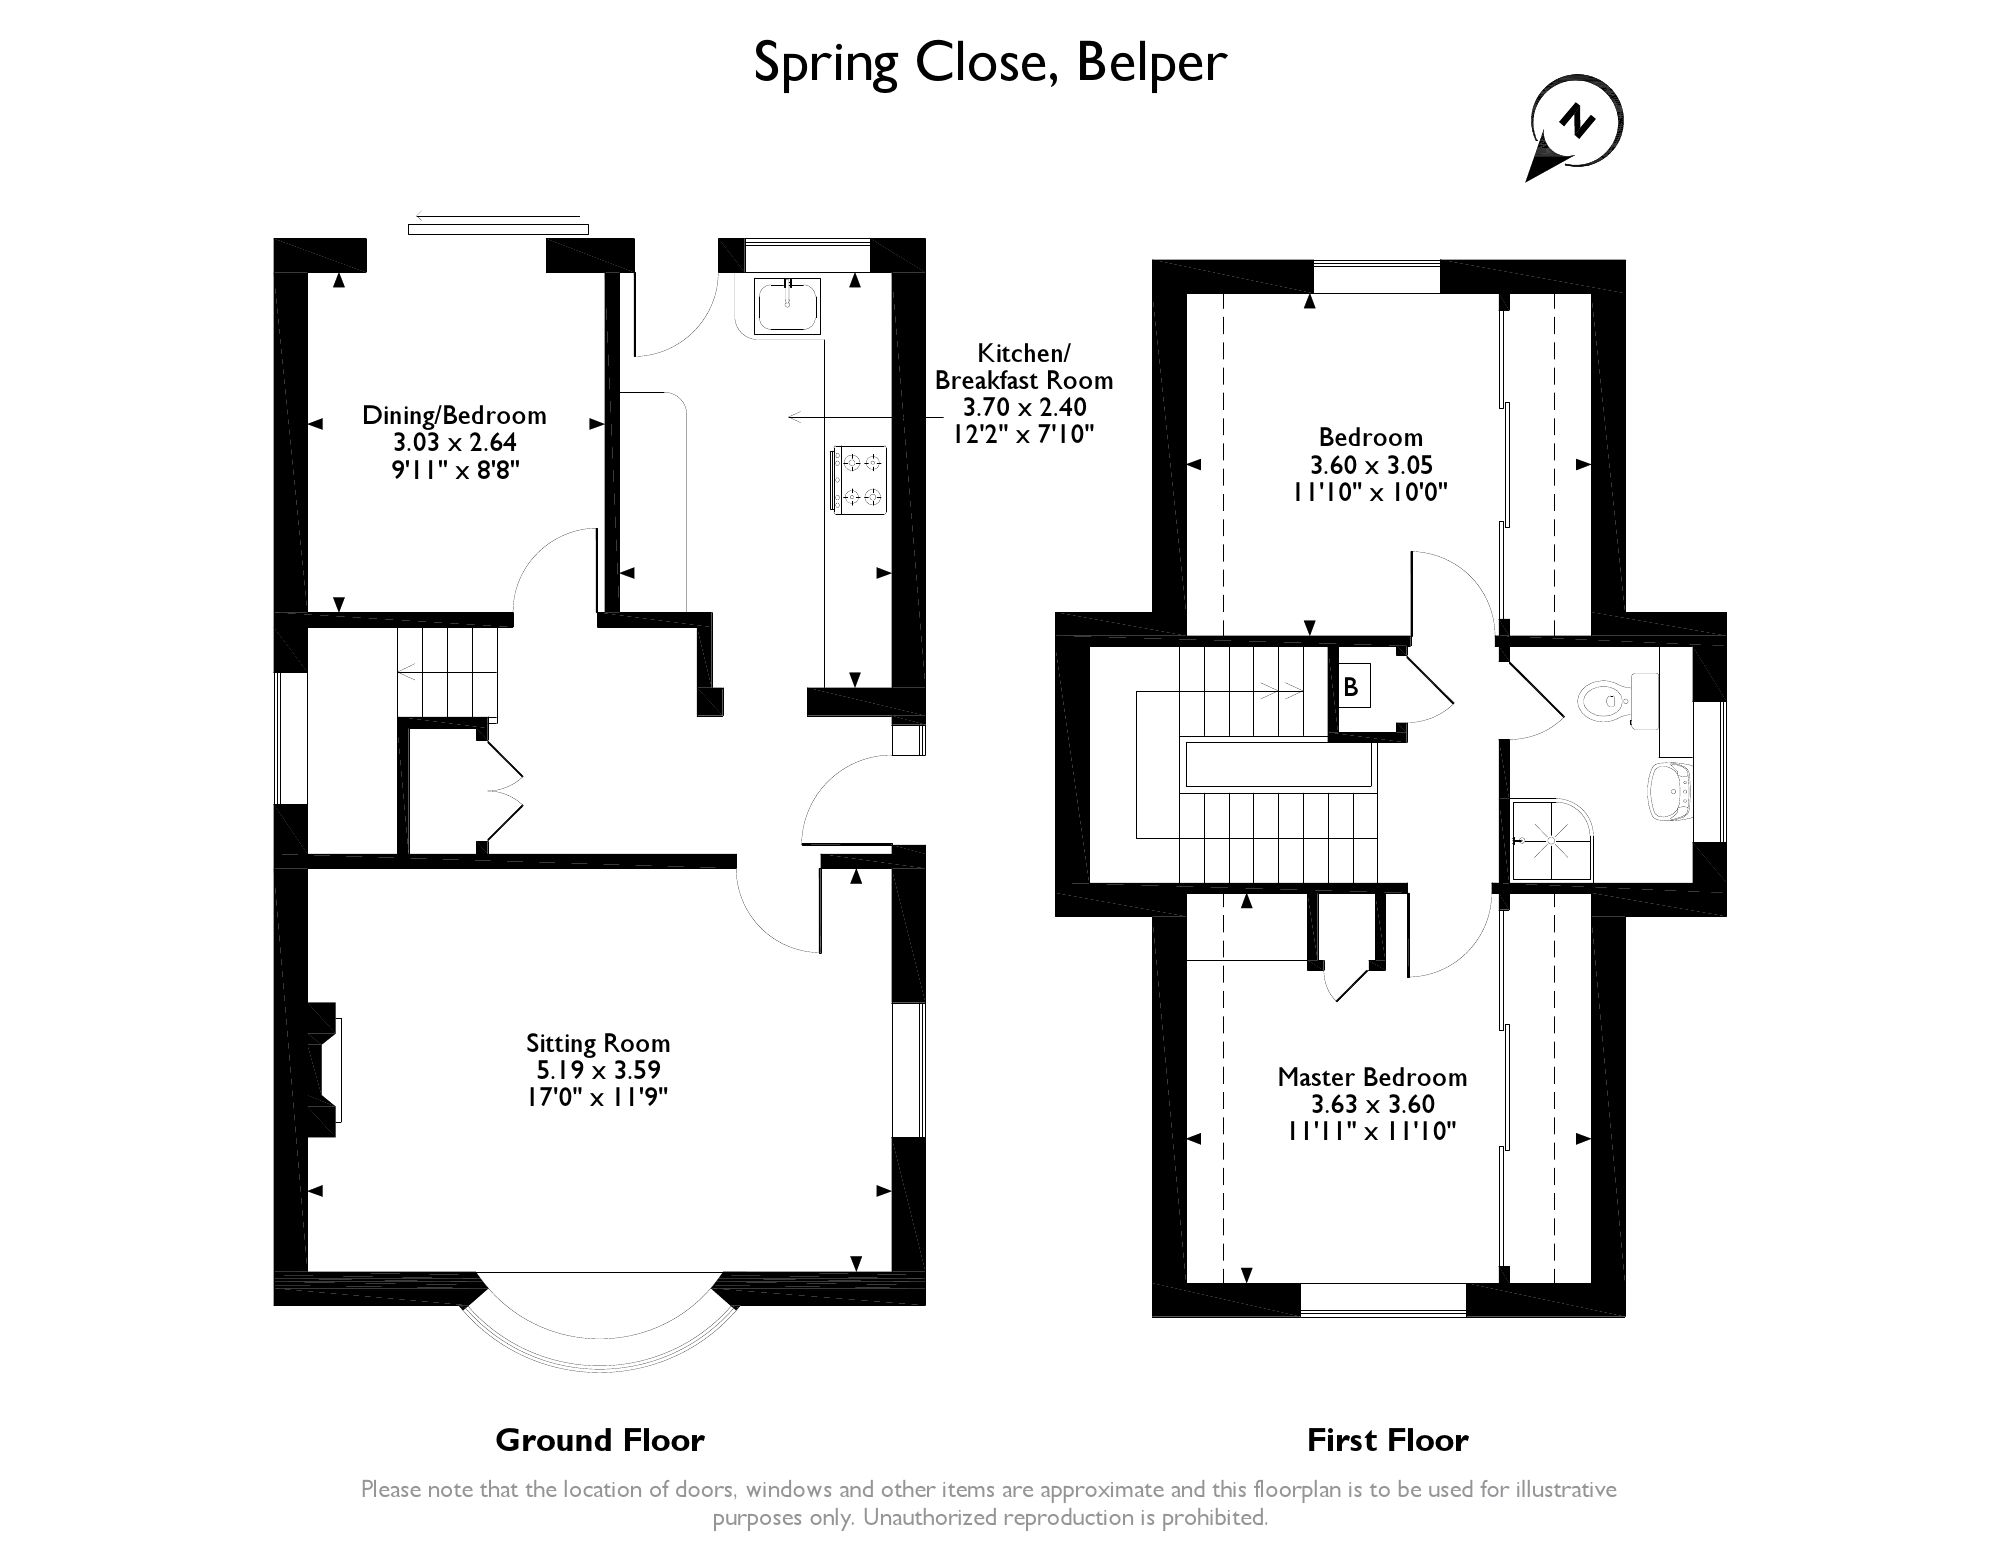 Detached House For Sale In Spring Close Belper De56 From Emoov Schematic